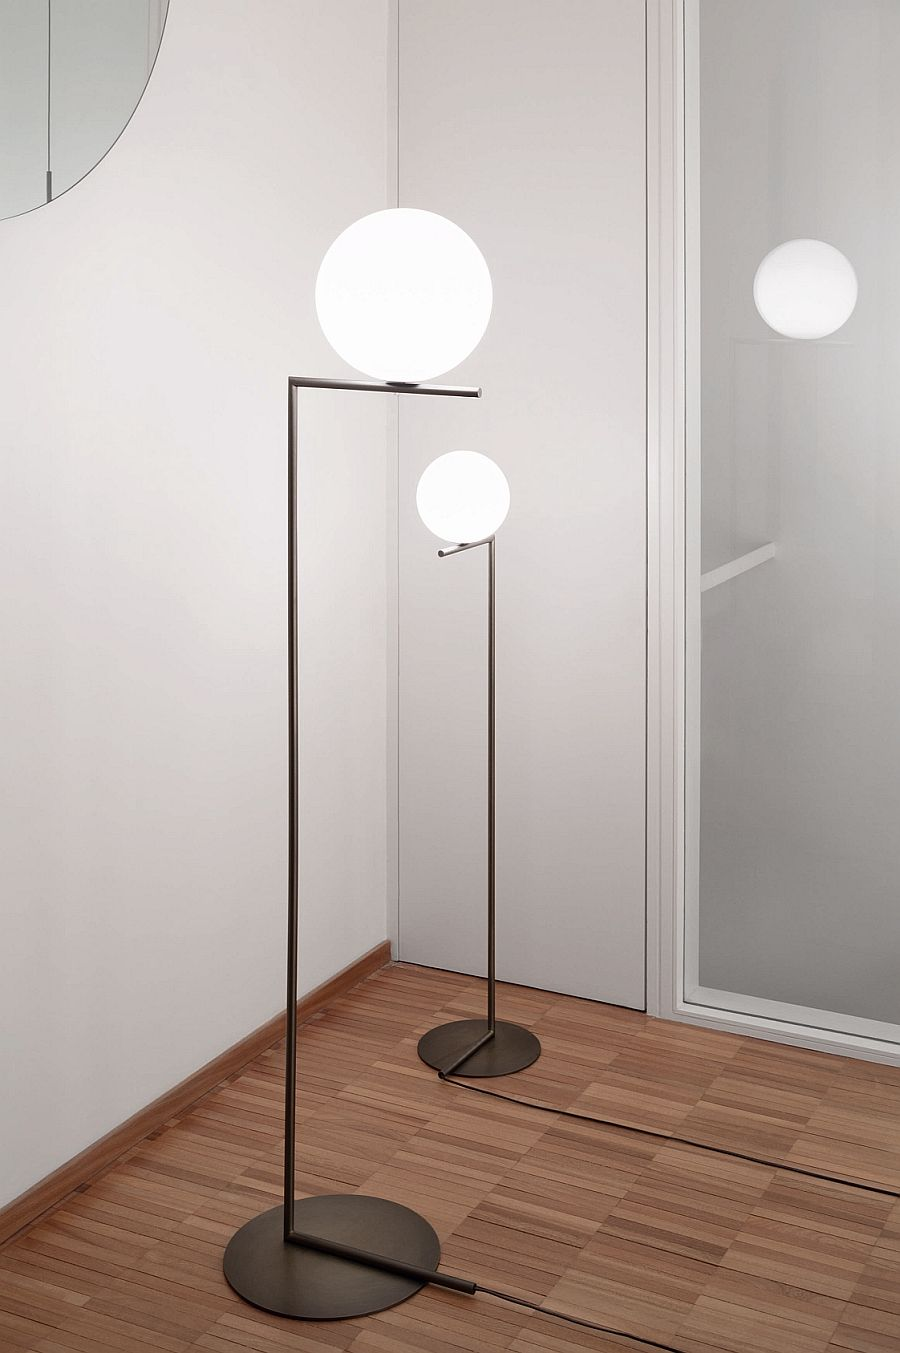 1000+ images about Floor lamps on Pinterest - ^